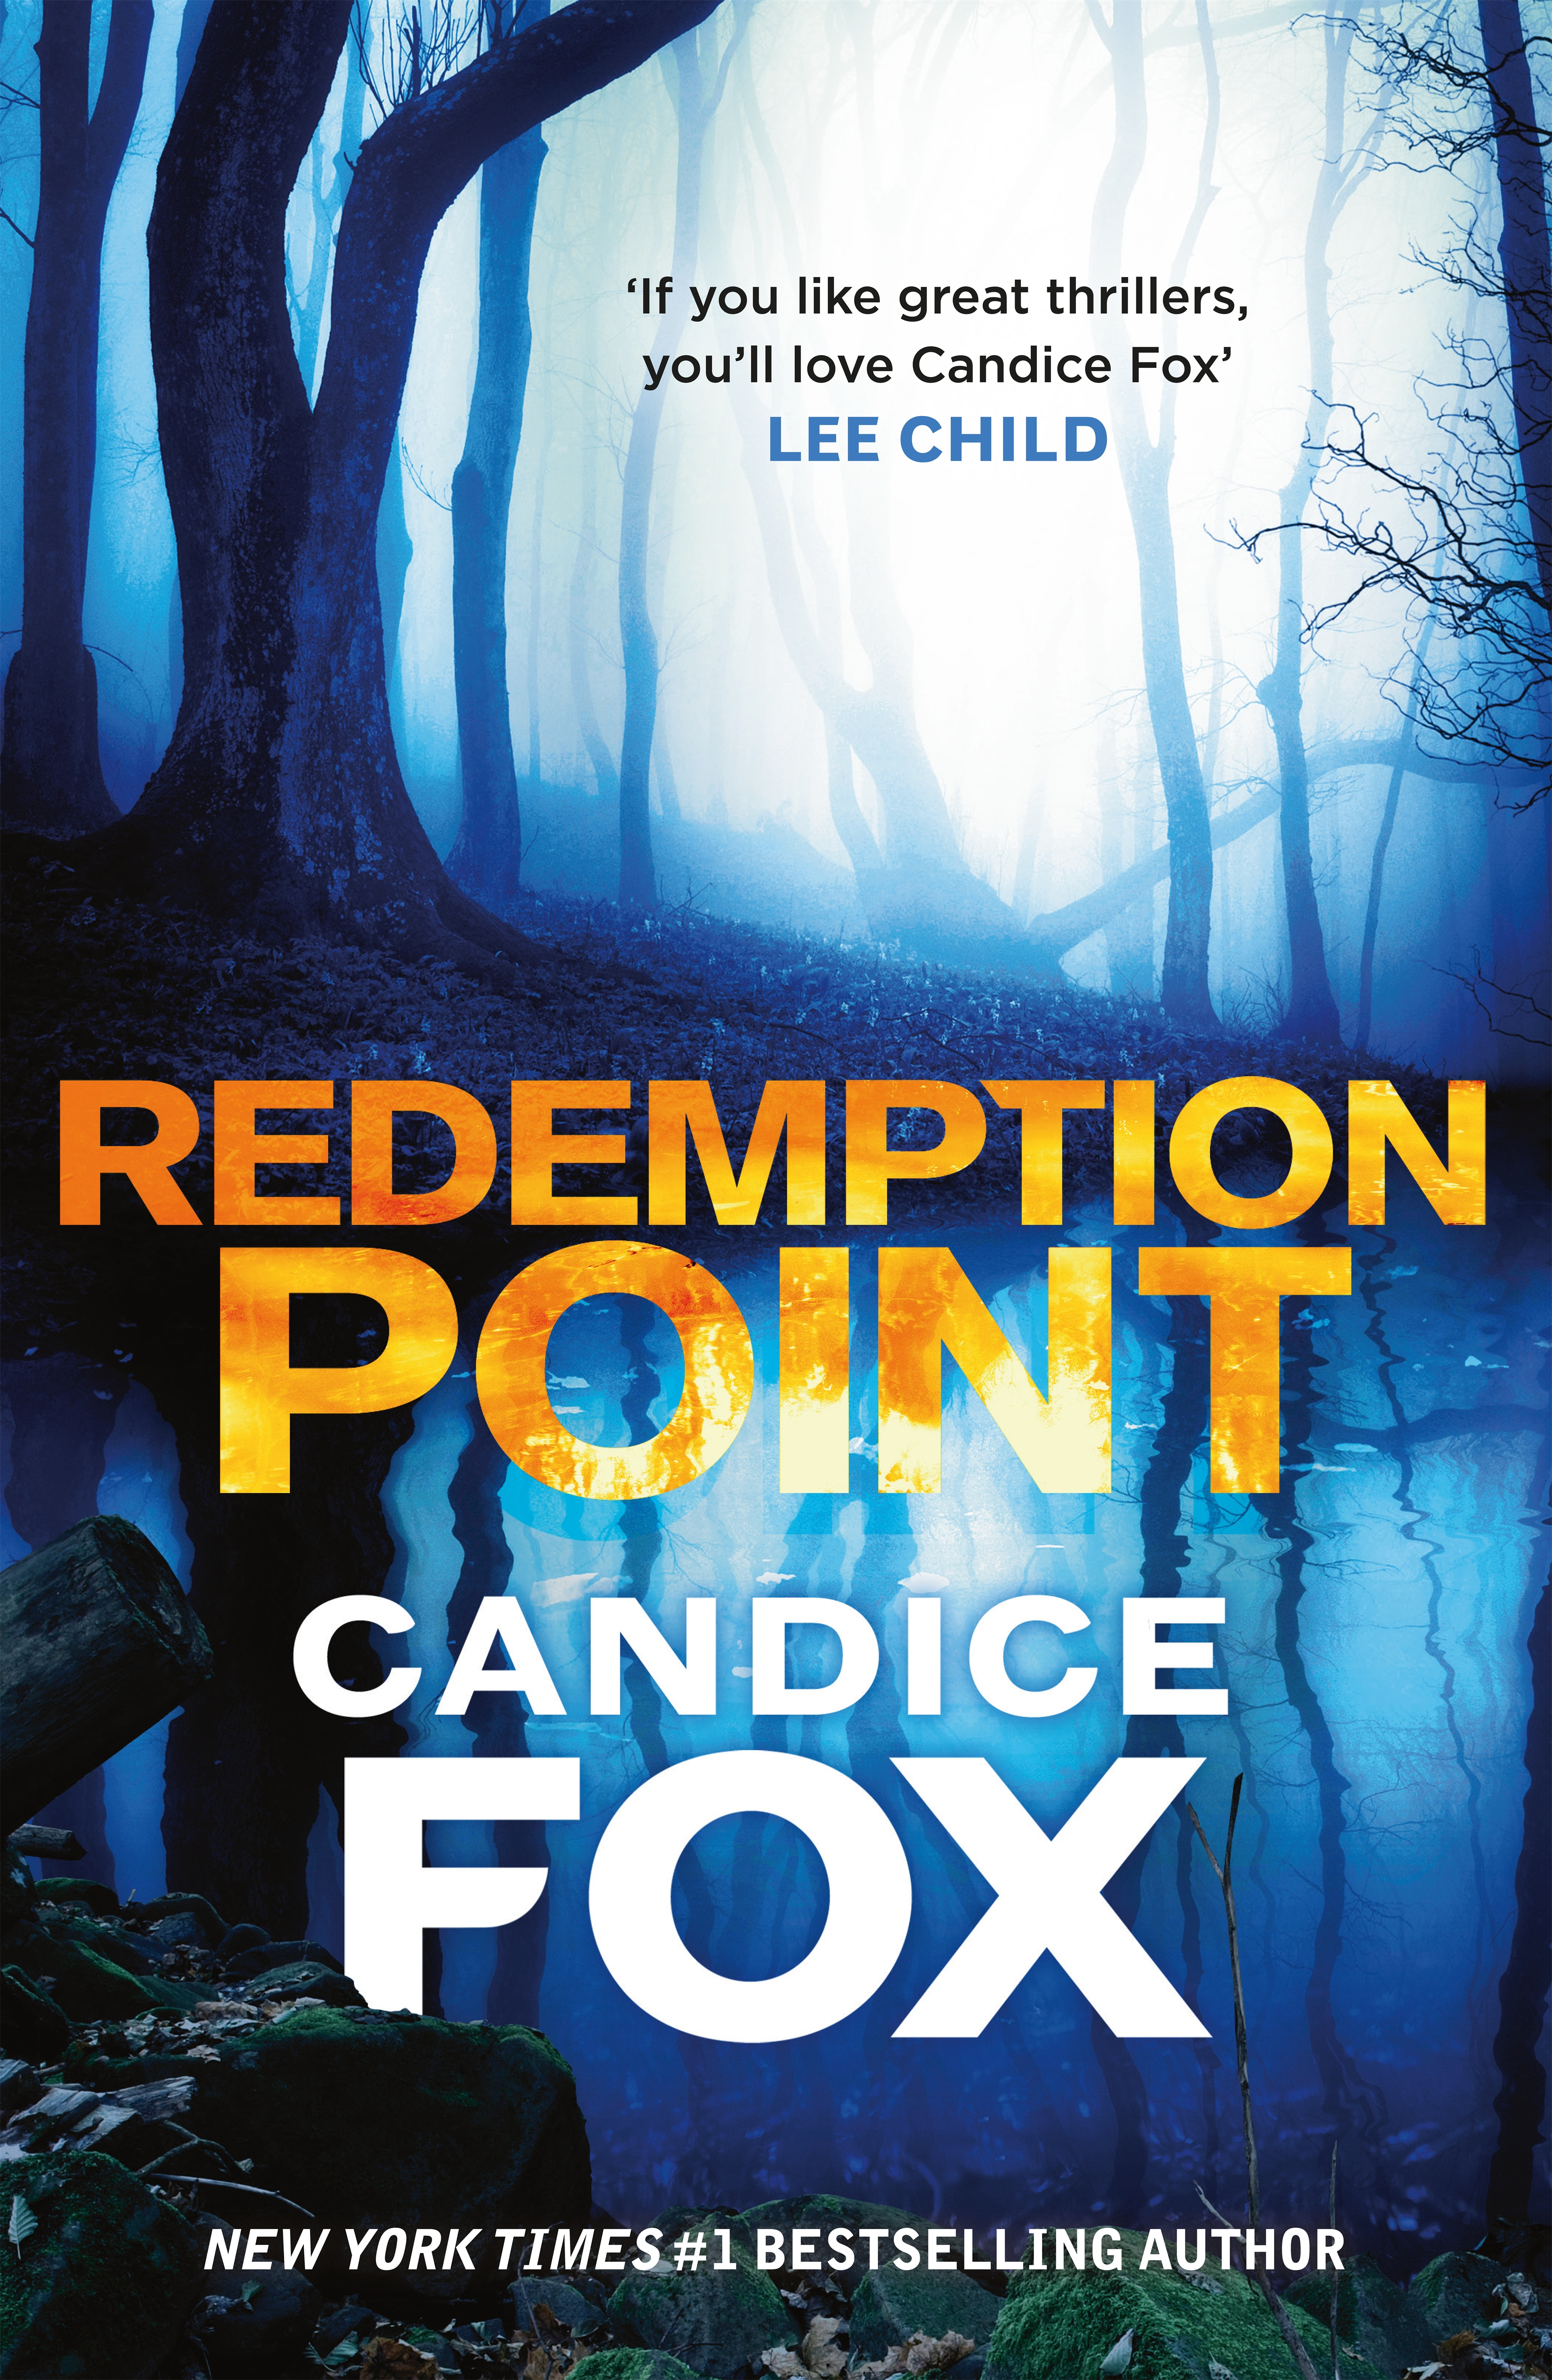 Redemption Point by Candice Fox.